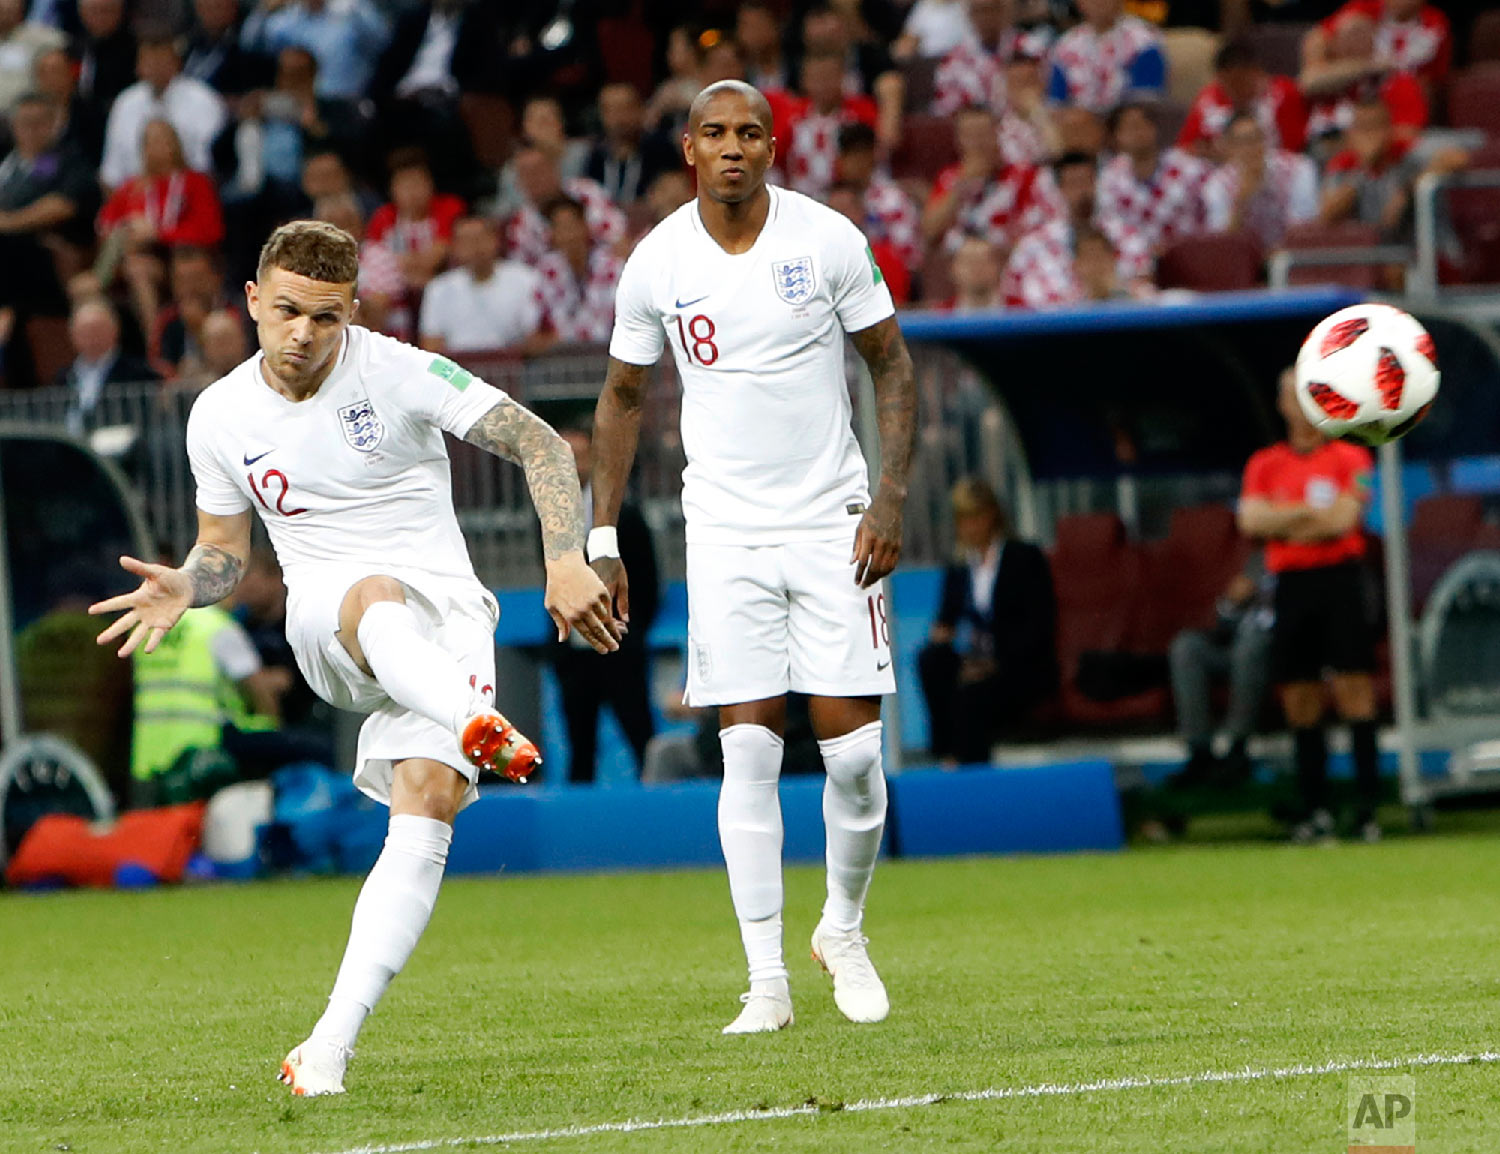 England's Kieran Trippier scores his side's opening goal during the semifinal match between Croatia and England at the 2018 soccer World Cup in the Luzhniki Stadium in, Moscow, Russia, Wednesday, July 11, 2018. (AP Photo/Alastair Grant)